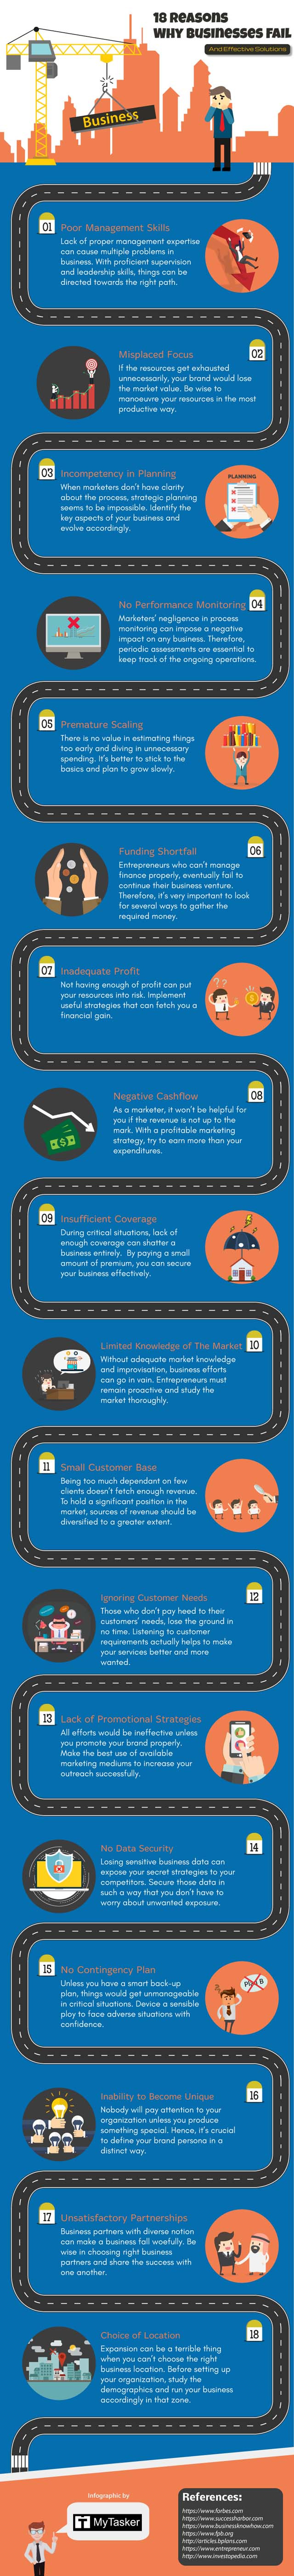 Business Infographic: Why Businesses Fail